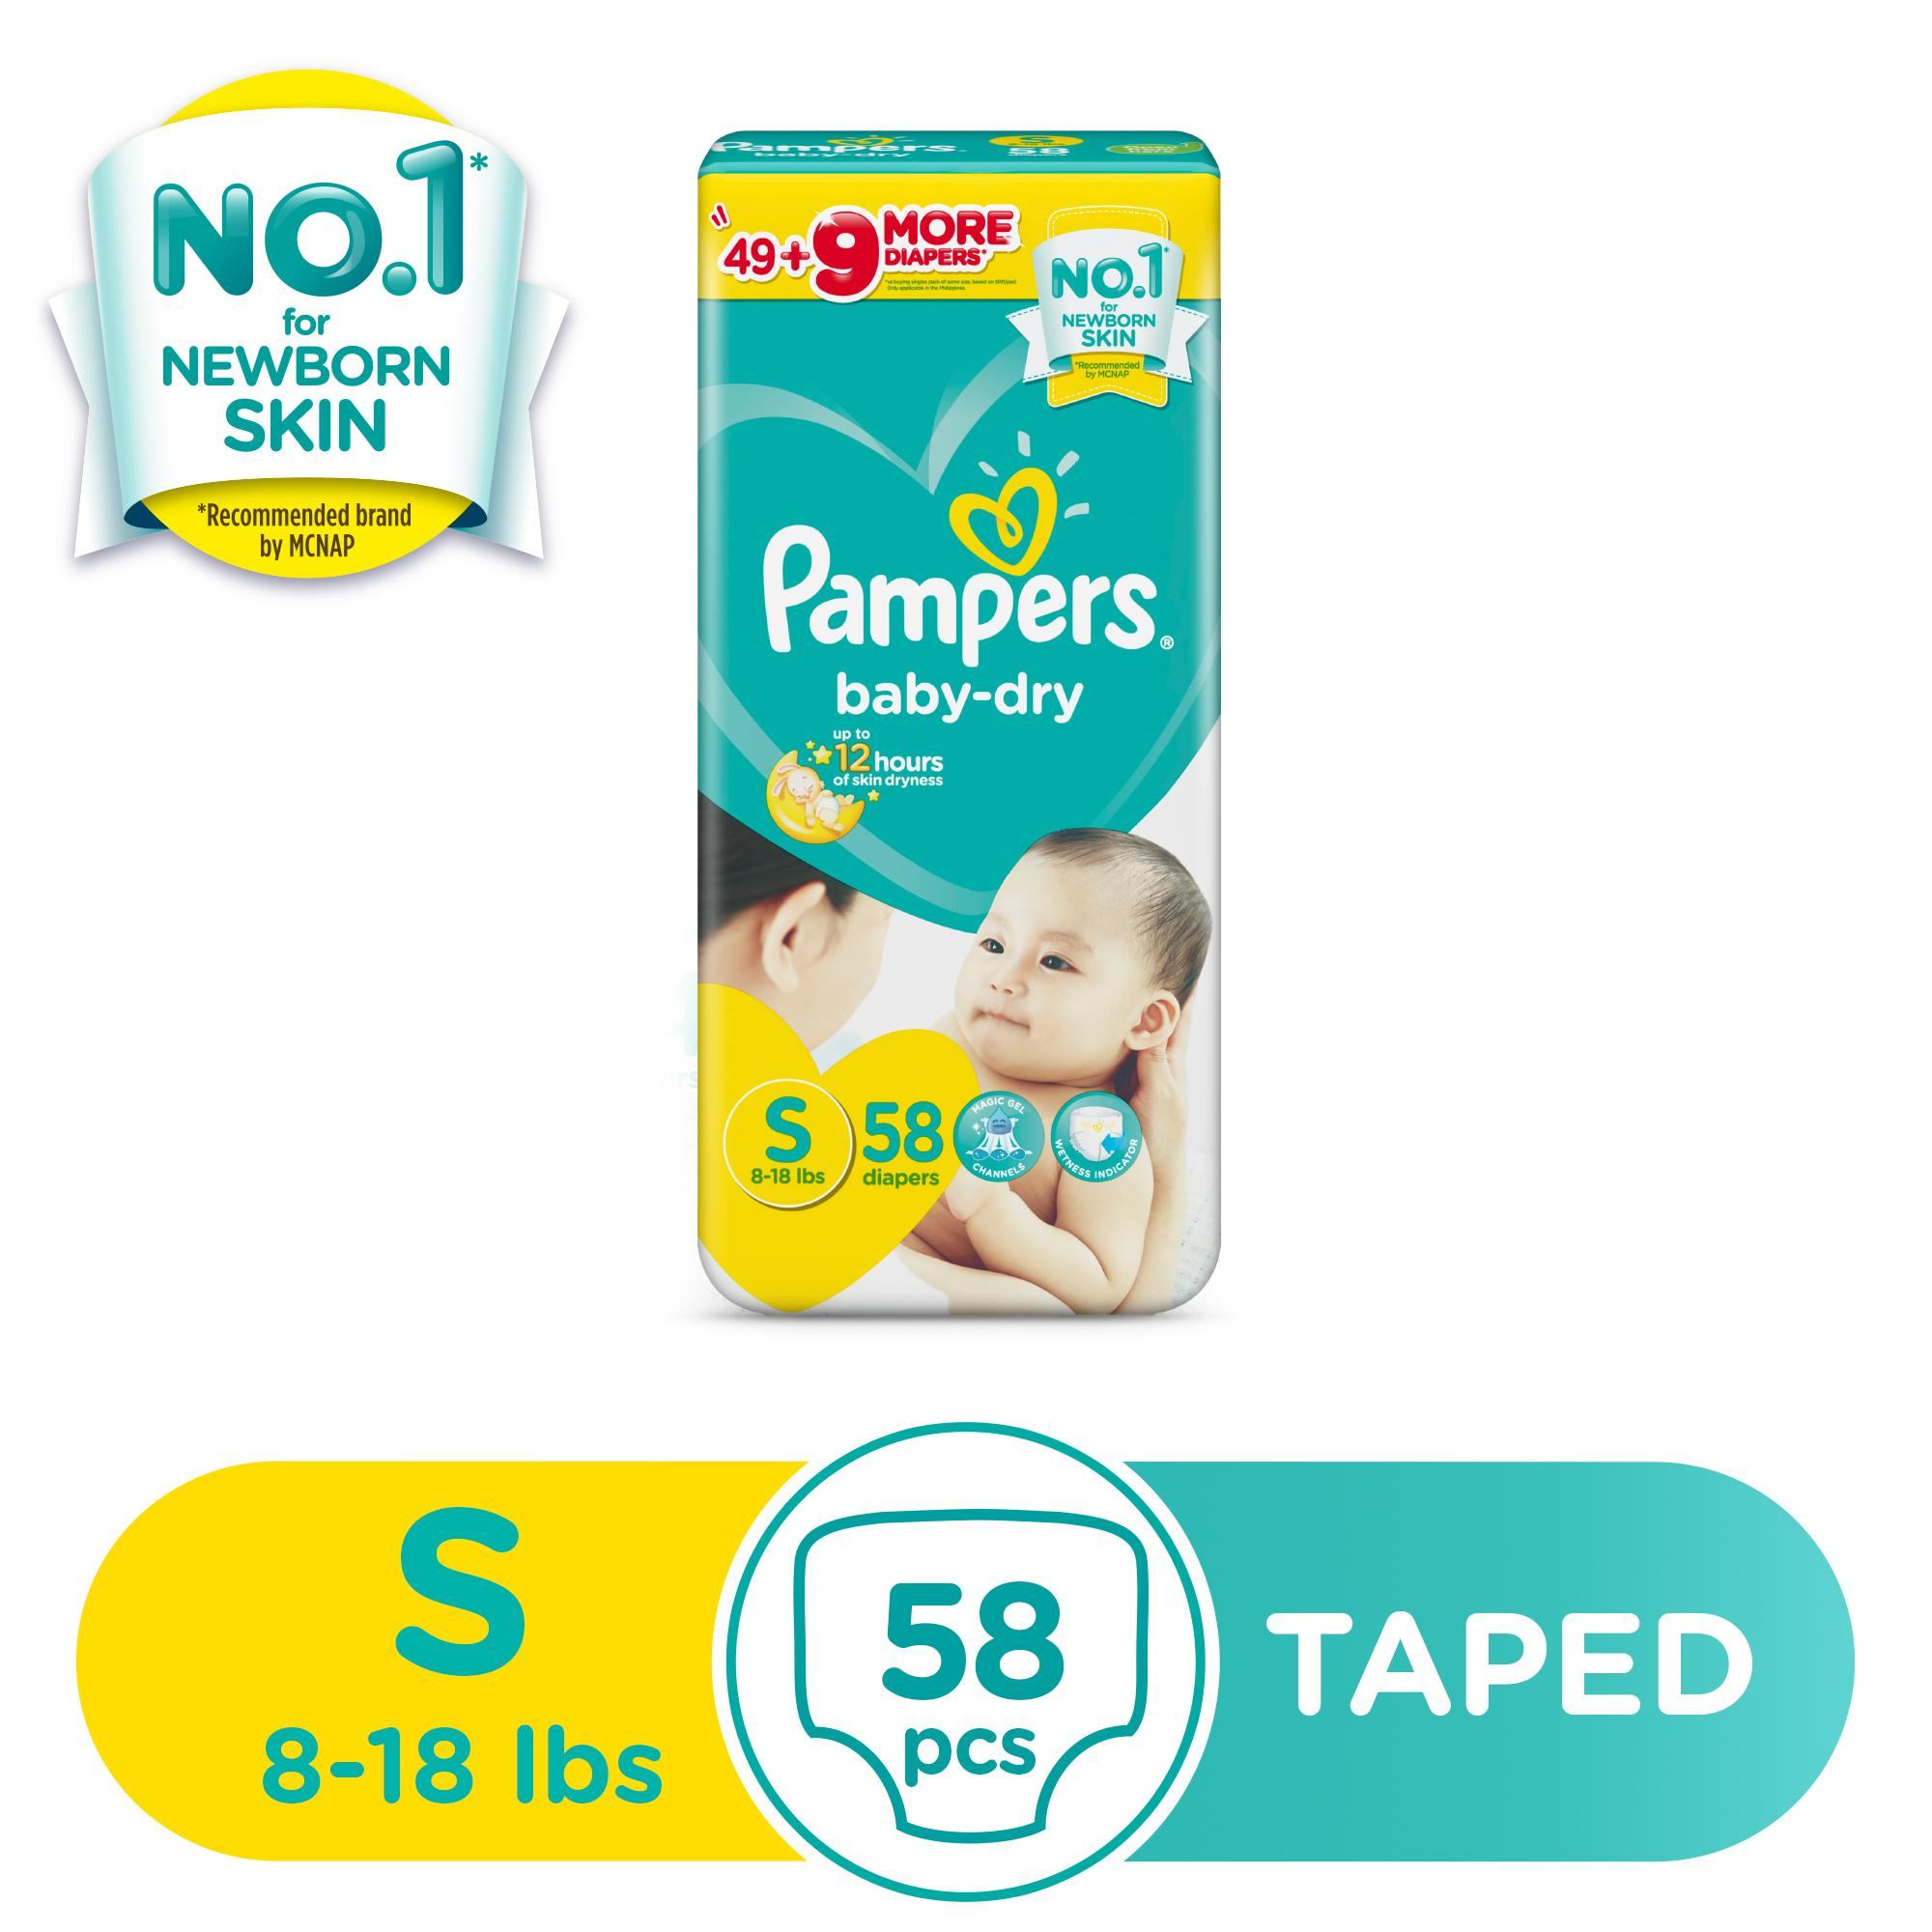 Pampers Baby Dry Diaper Small 58s - picture 2